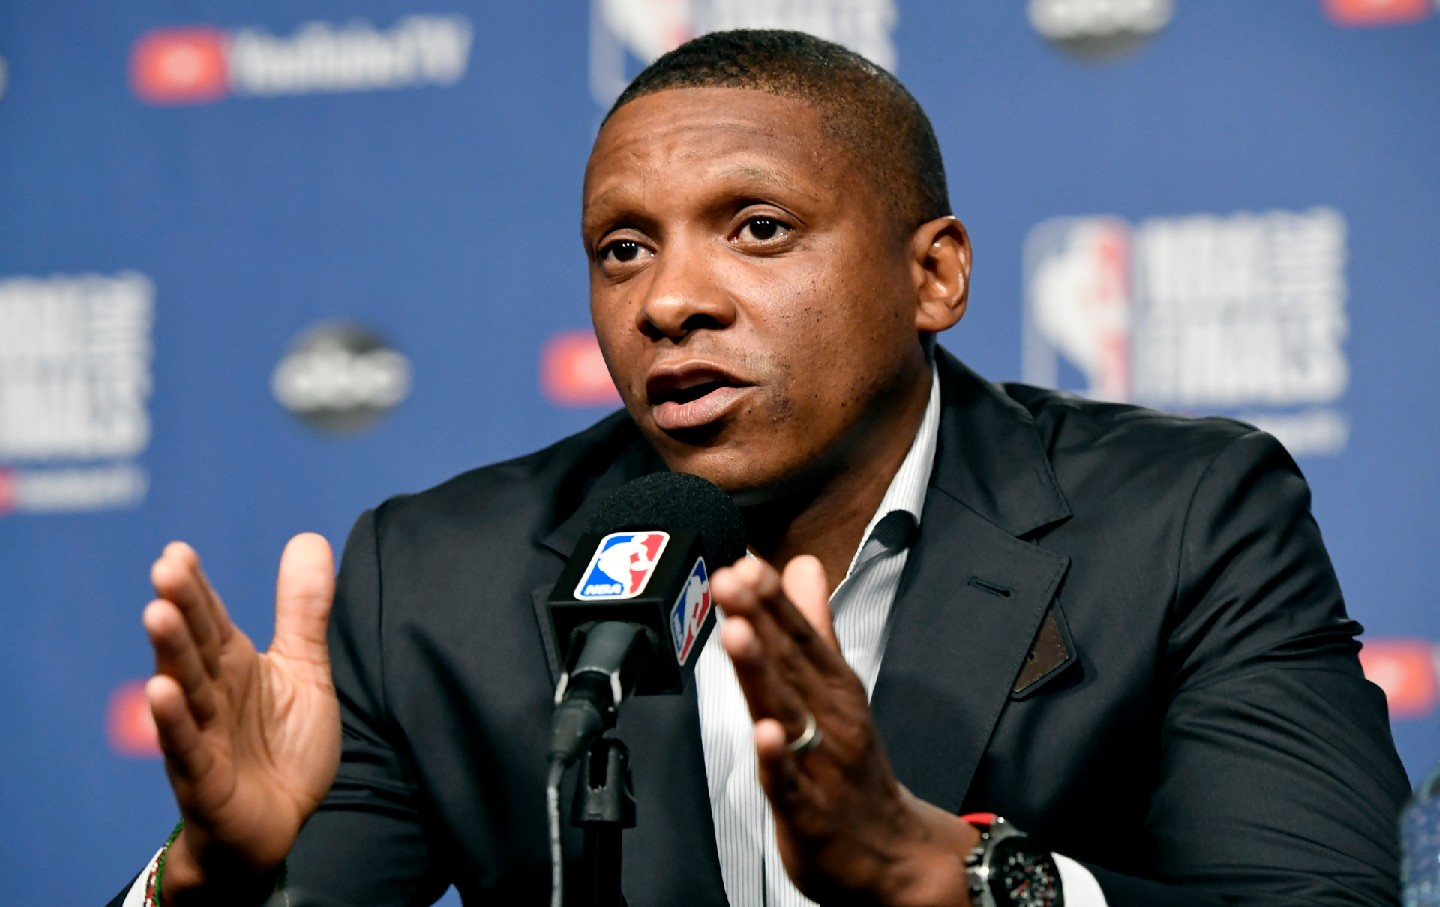 BASKETBALL: MASAI UJIRI PRICKS GLOBAL CONSCIENCE WITH LAUNCH OF HUMANITY